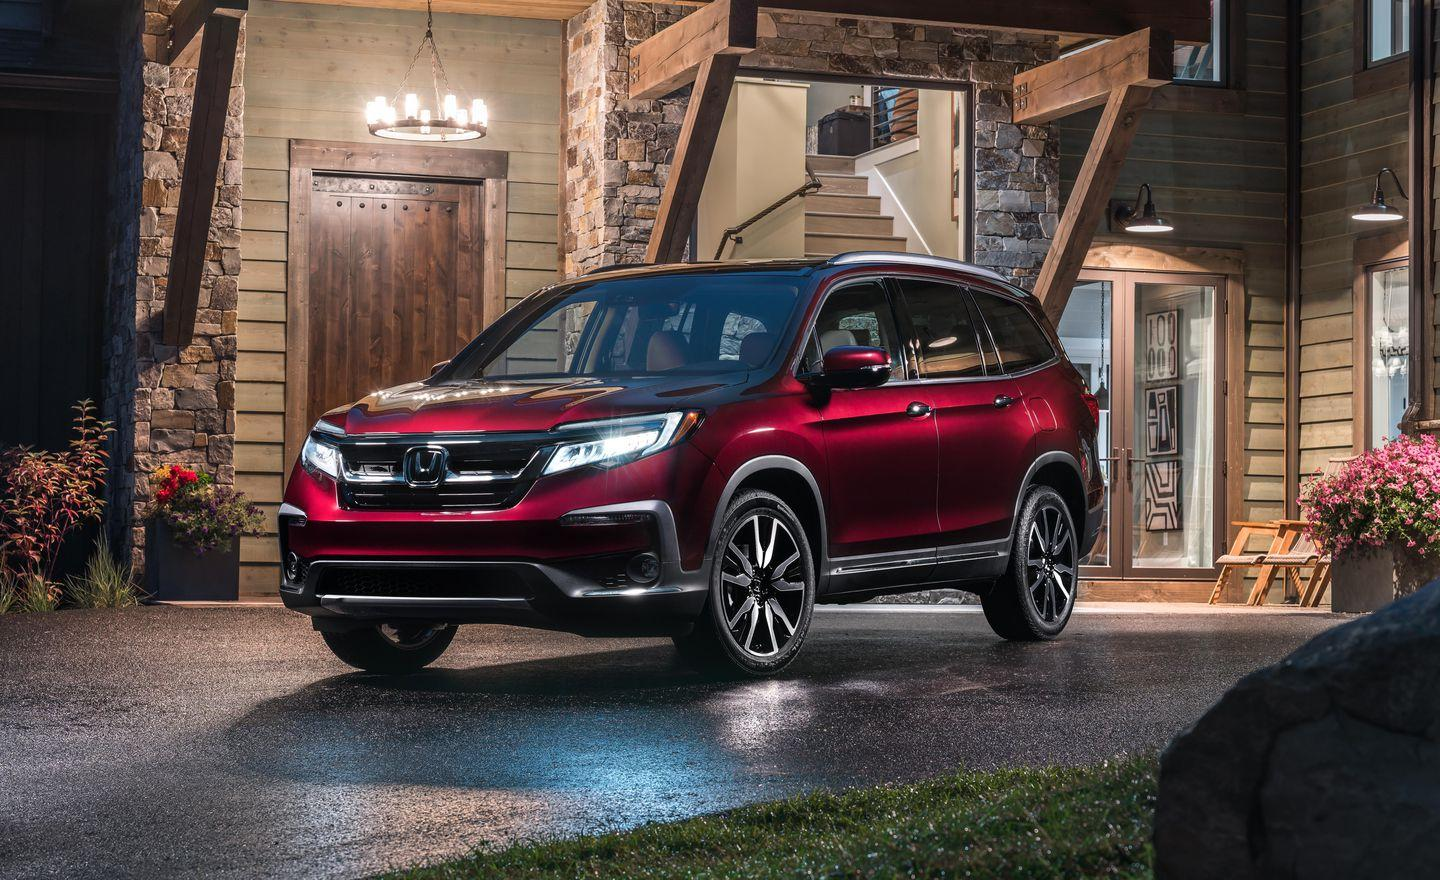 The 2019 Honda Pilot Is the Vehicle of Choice for HGTV's